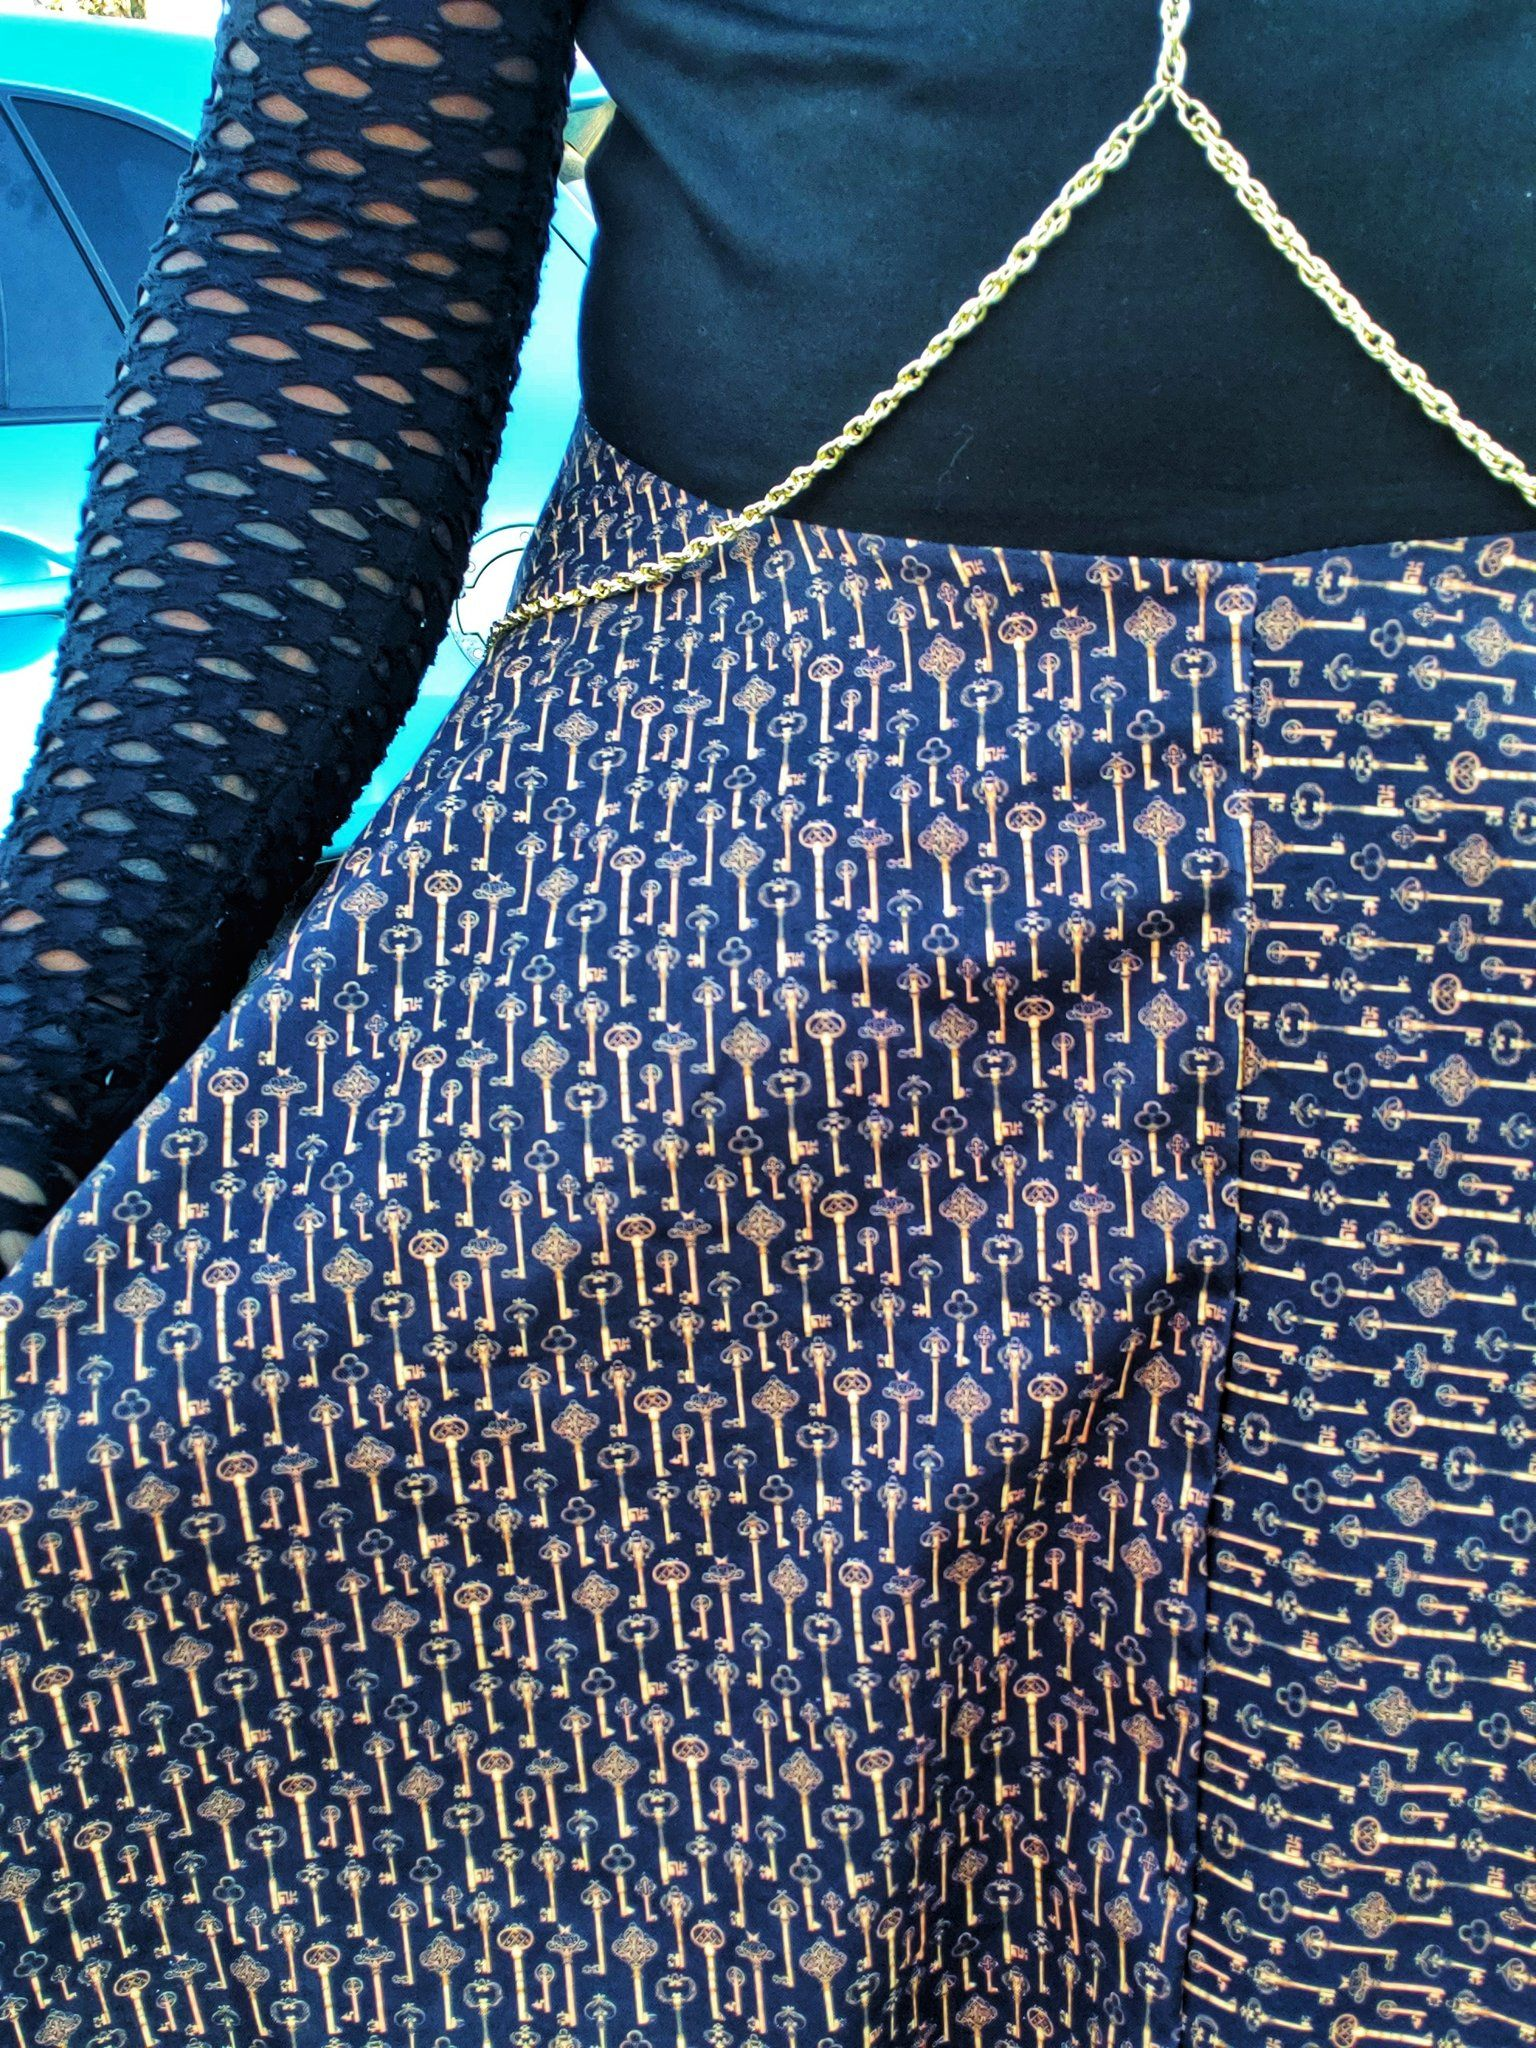 close up of the key fabric